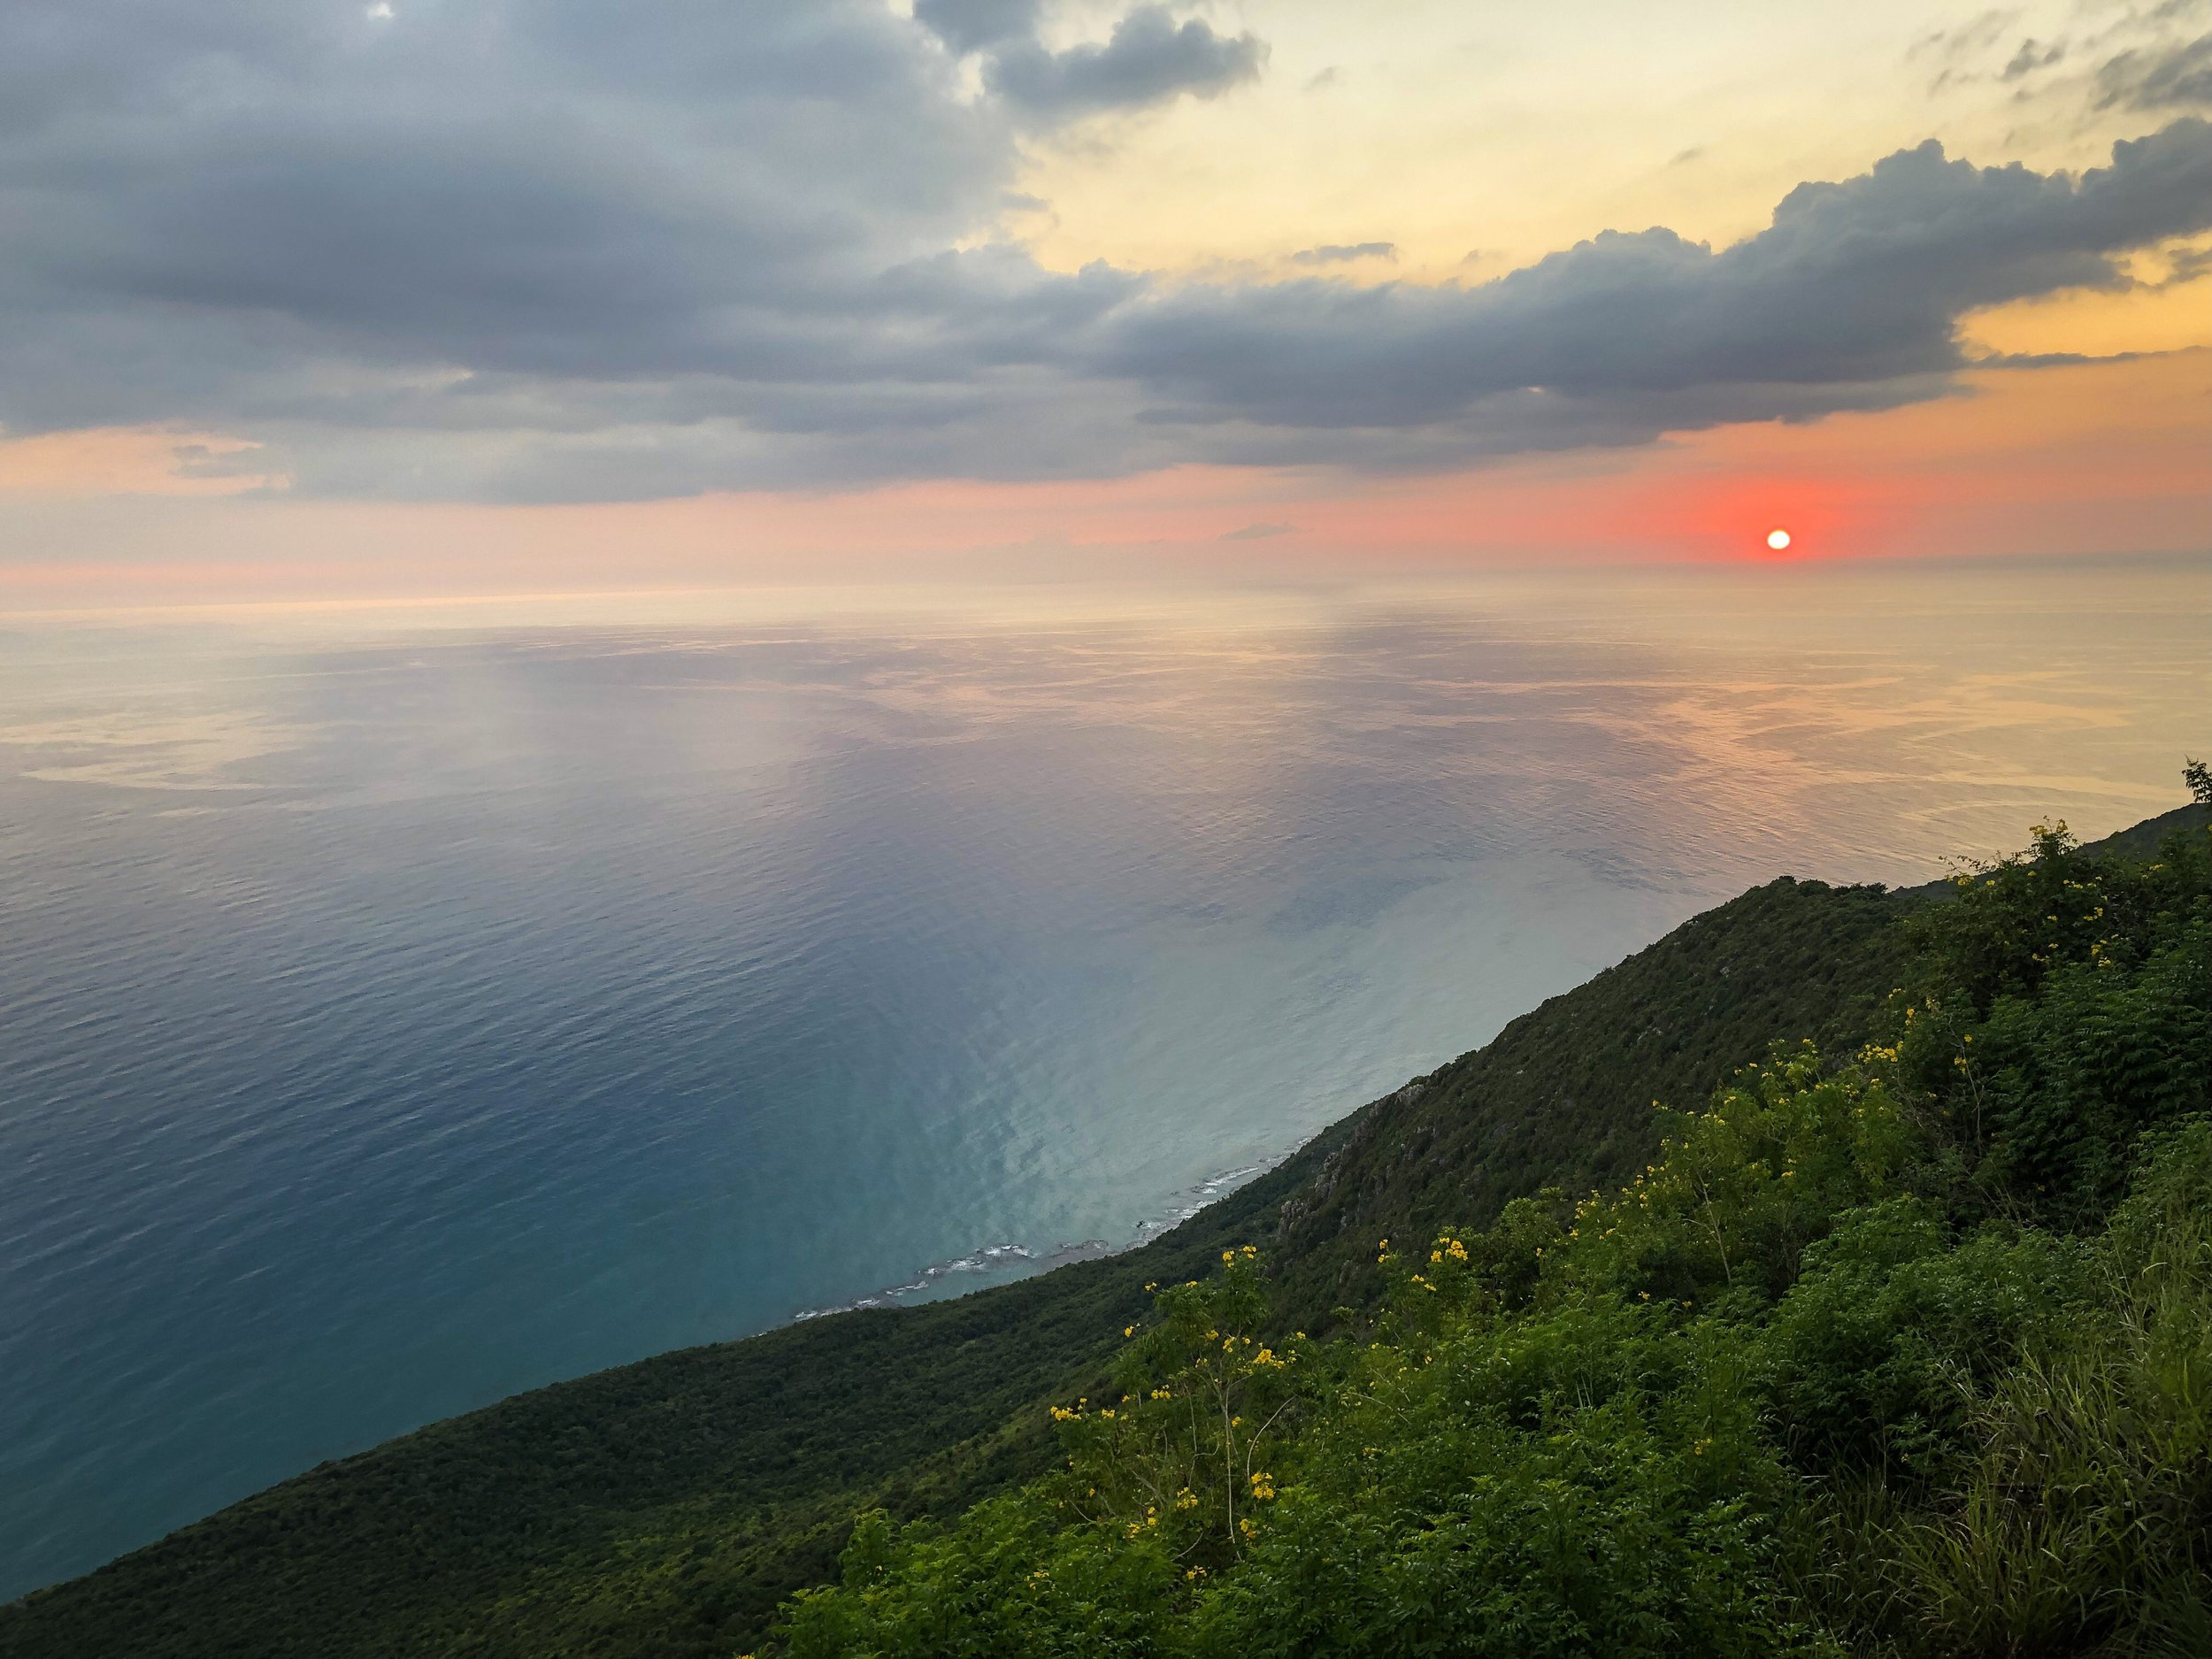 Sunset Over Lover's Leap (St. Elizabeth, Jamaica, 2018,  ©  JOEL ANG PHOTOGRAPHY)